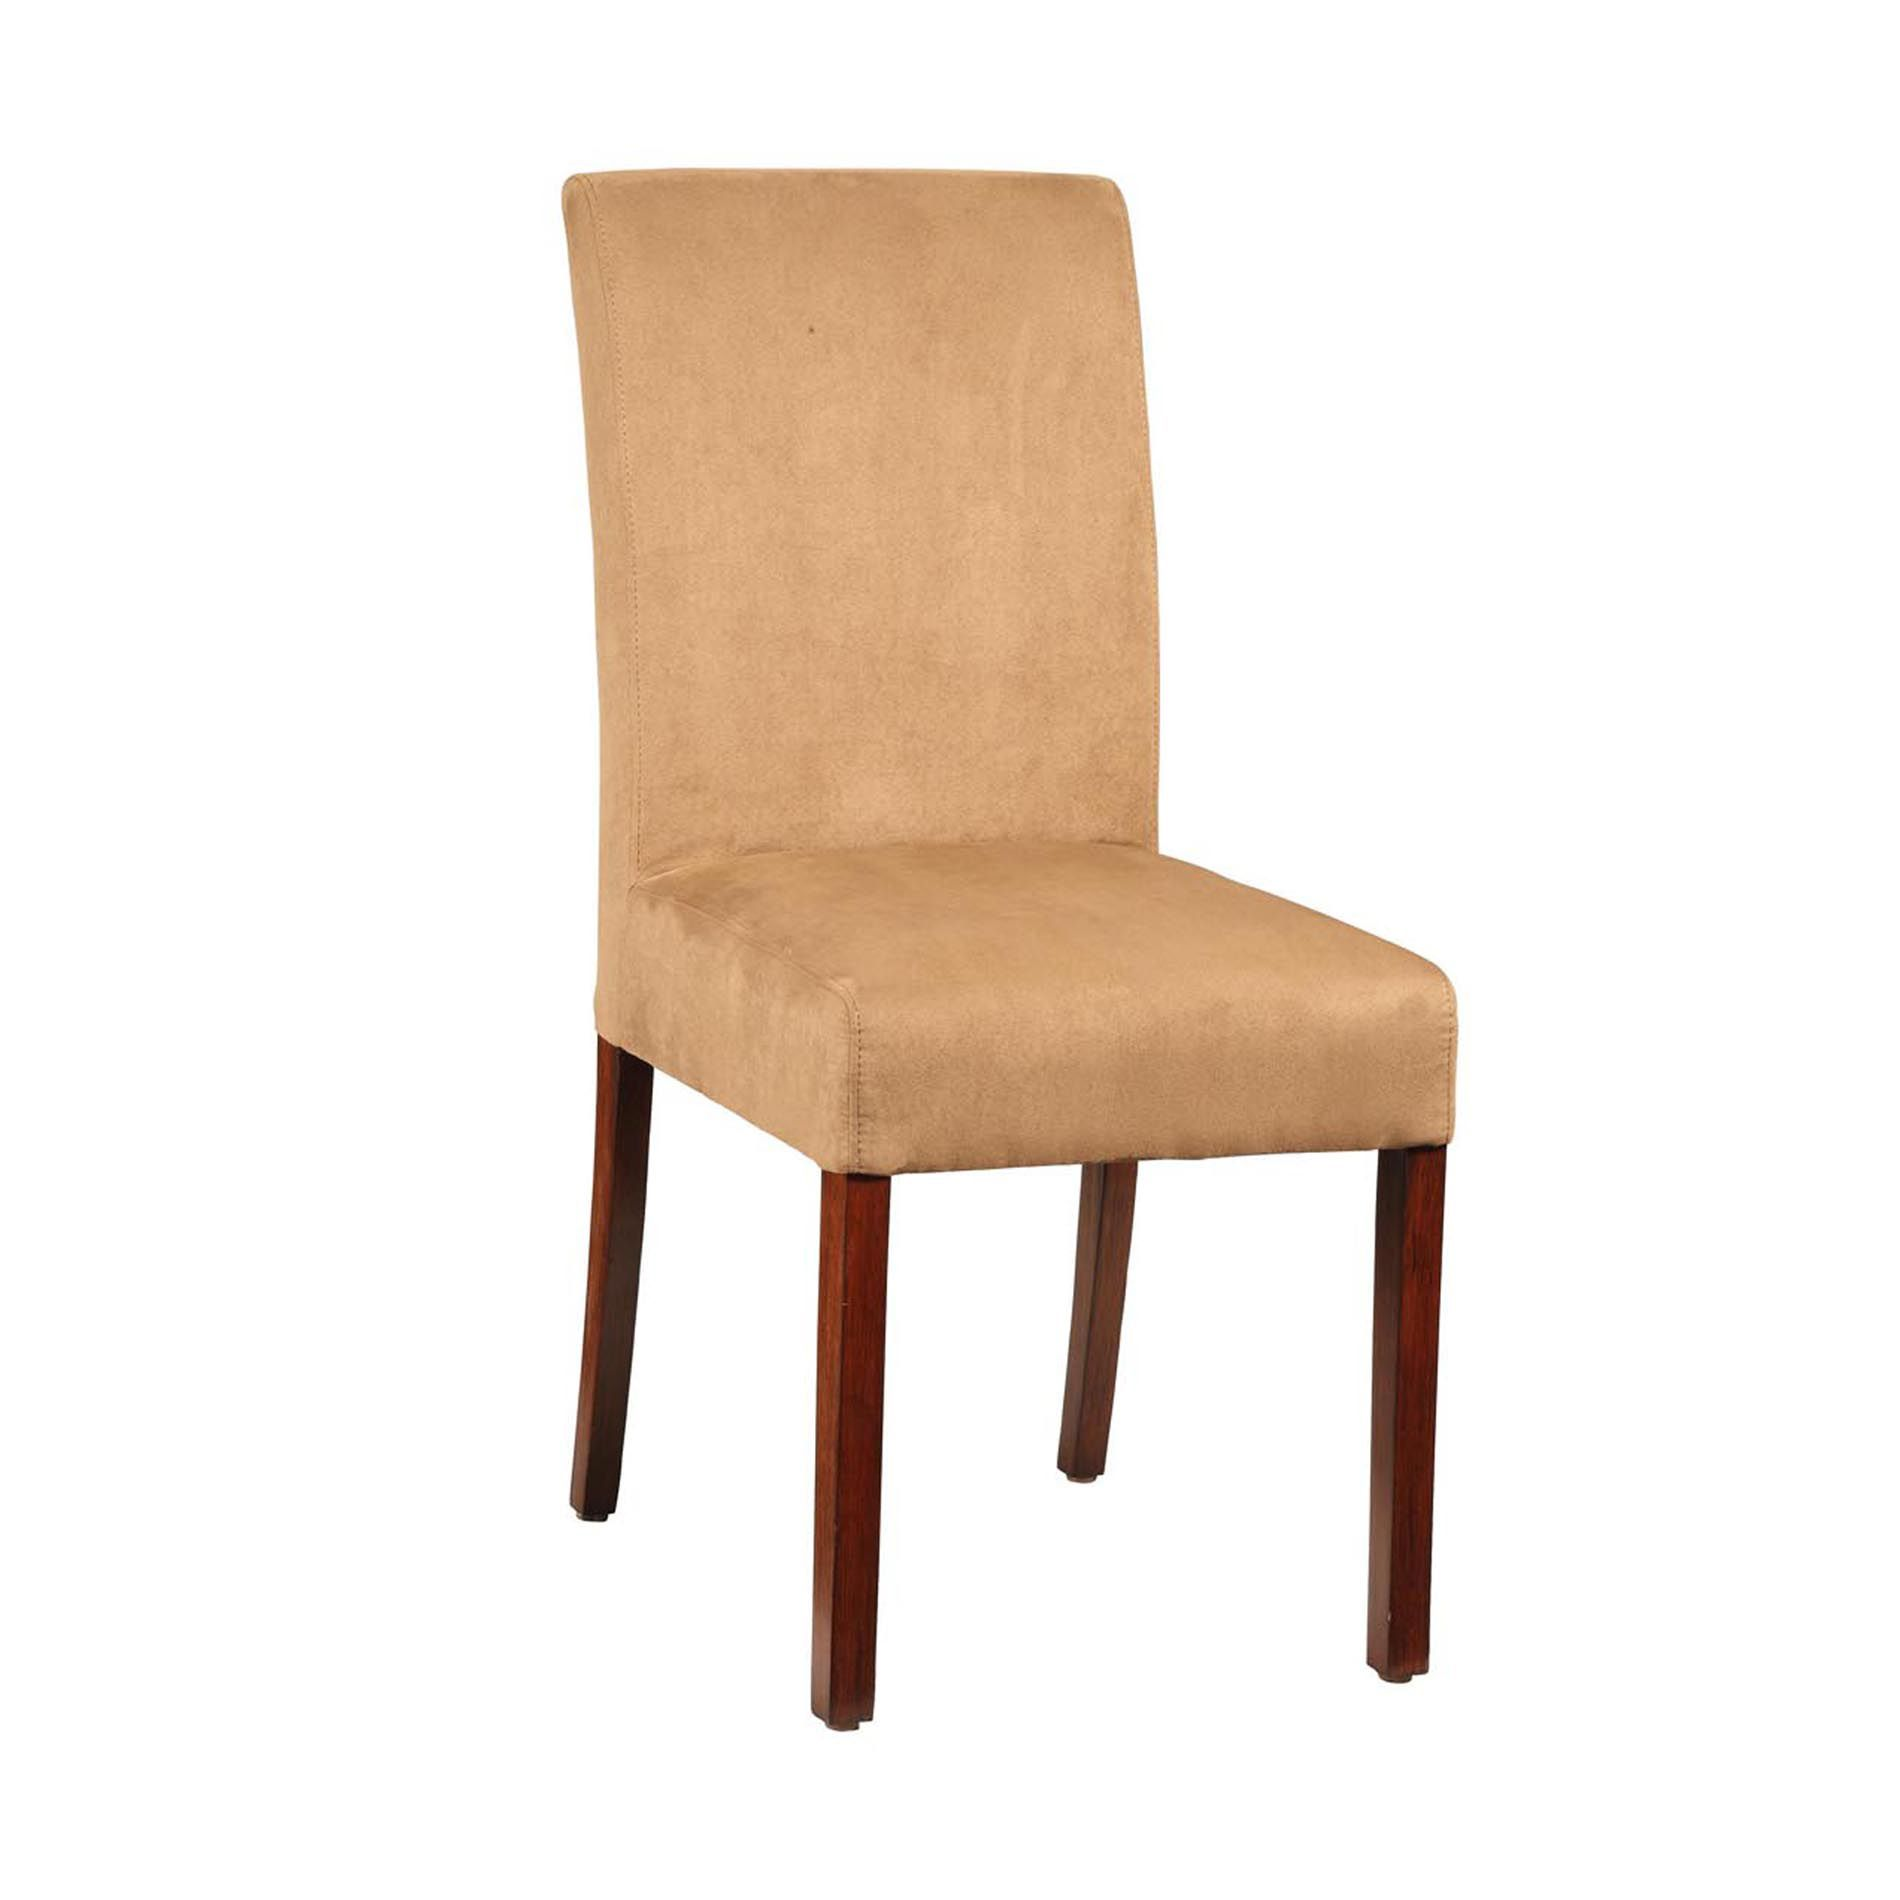 Microfiber Dining Chairs Essential Home Microfiber Parsons Chair Home Furniture